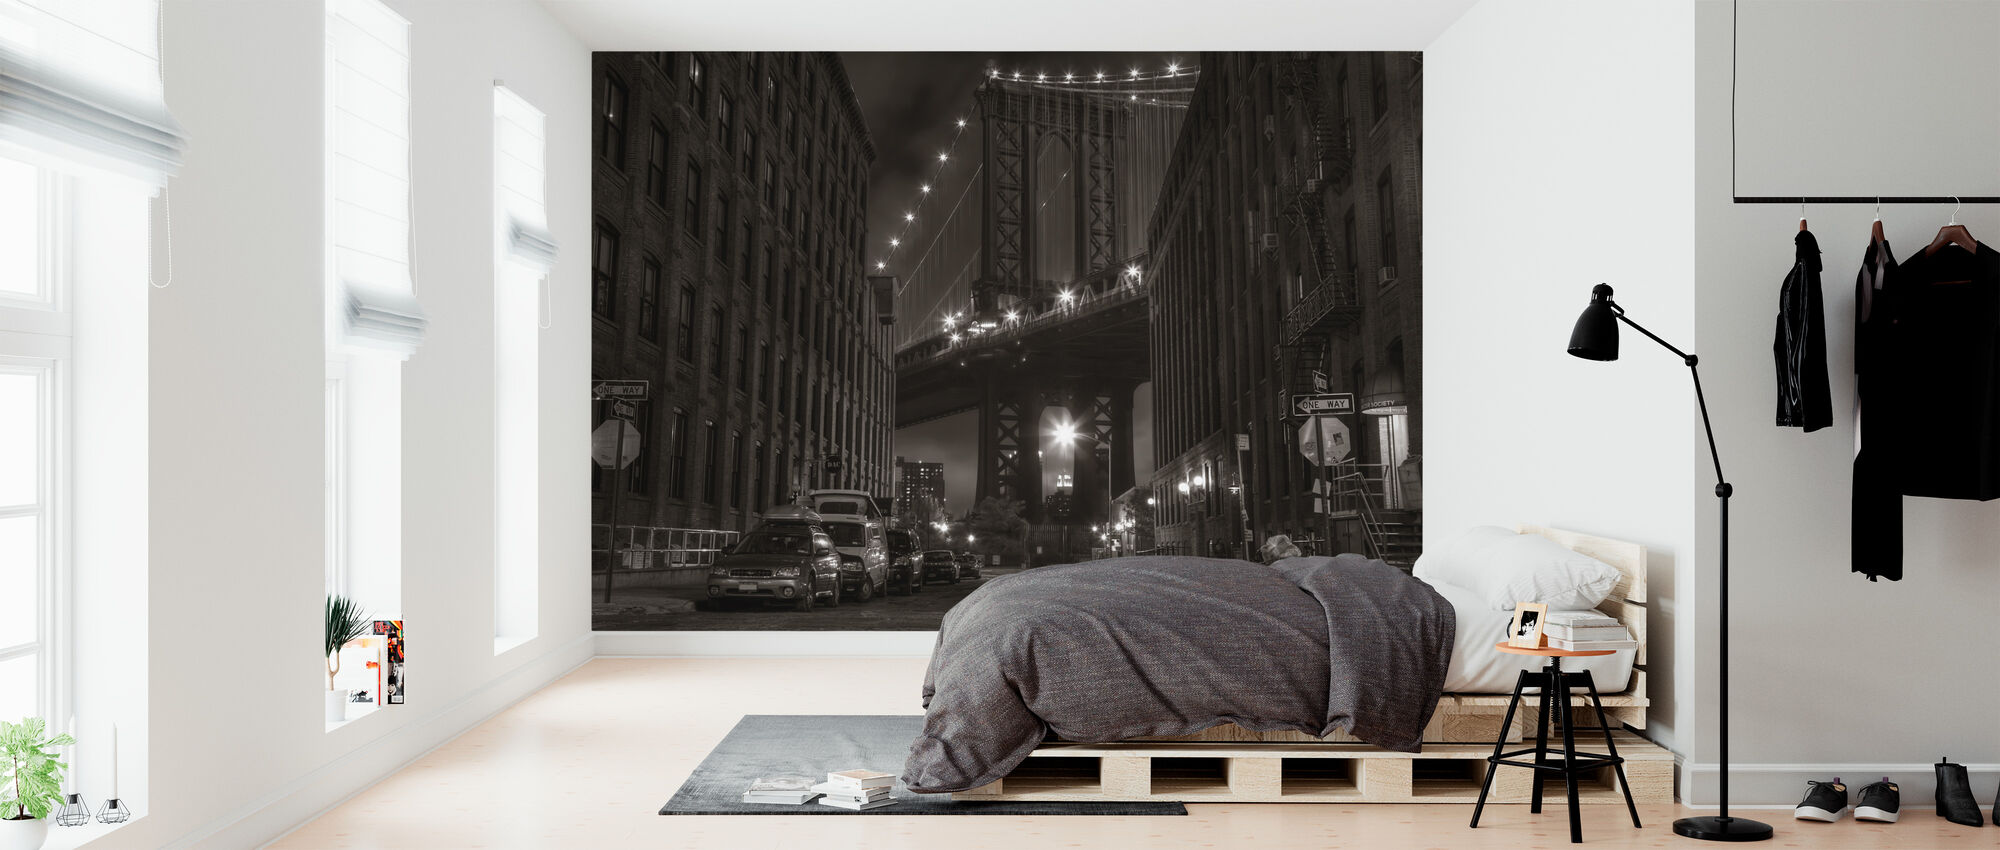 Washington Street, Manhattan, New York - Wallpaper - Bedroom